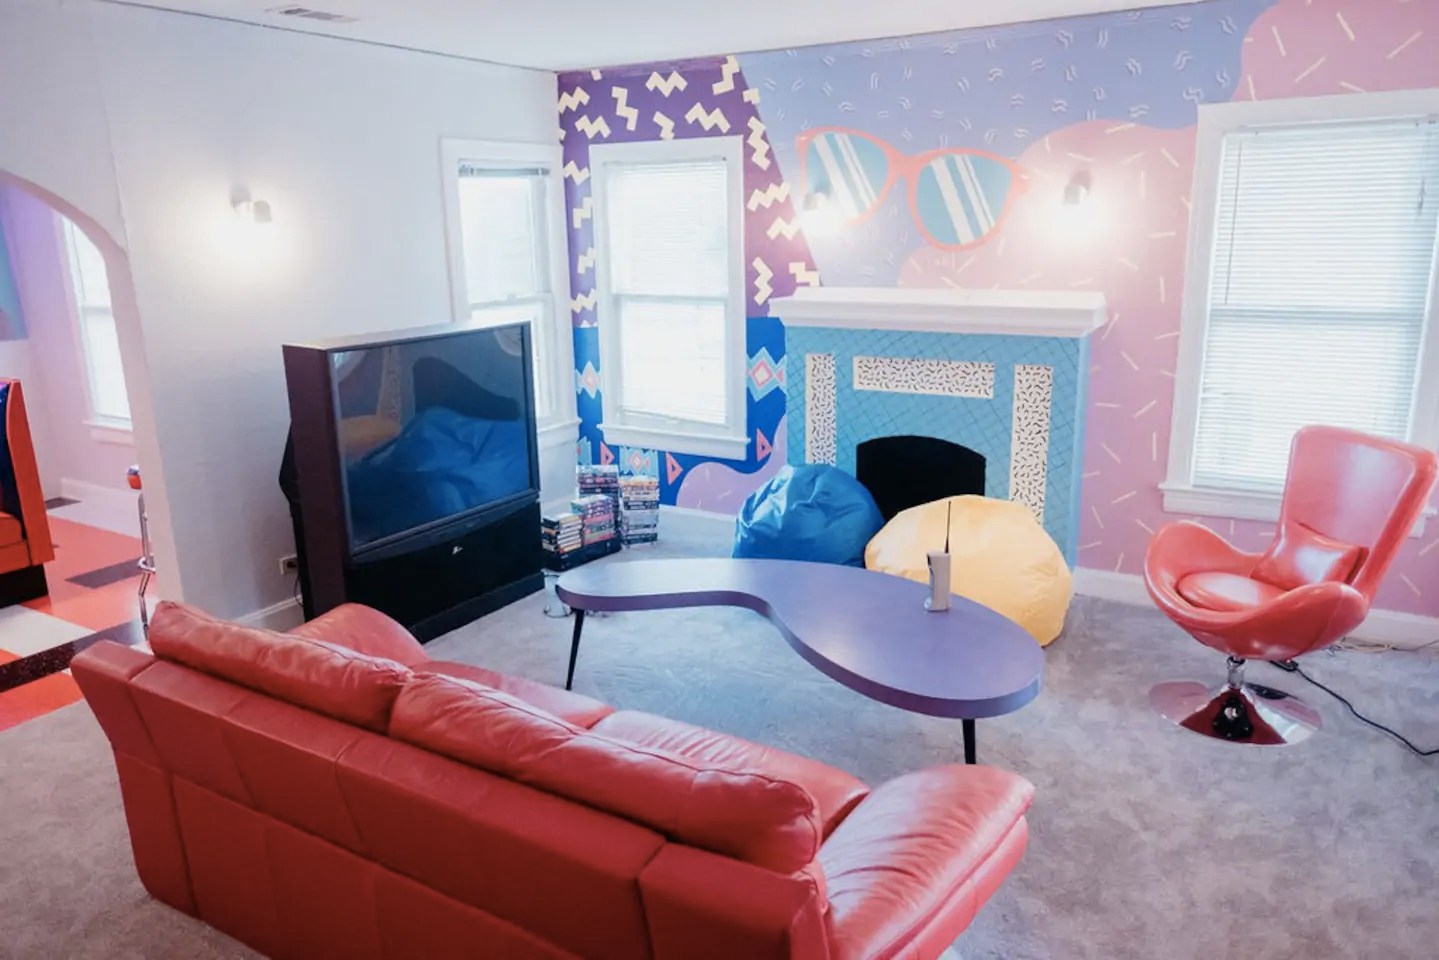 Saved By The Bell comes to life at this 90s-themed Airbnb in Dallas